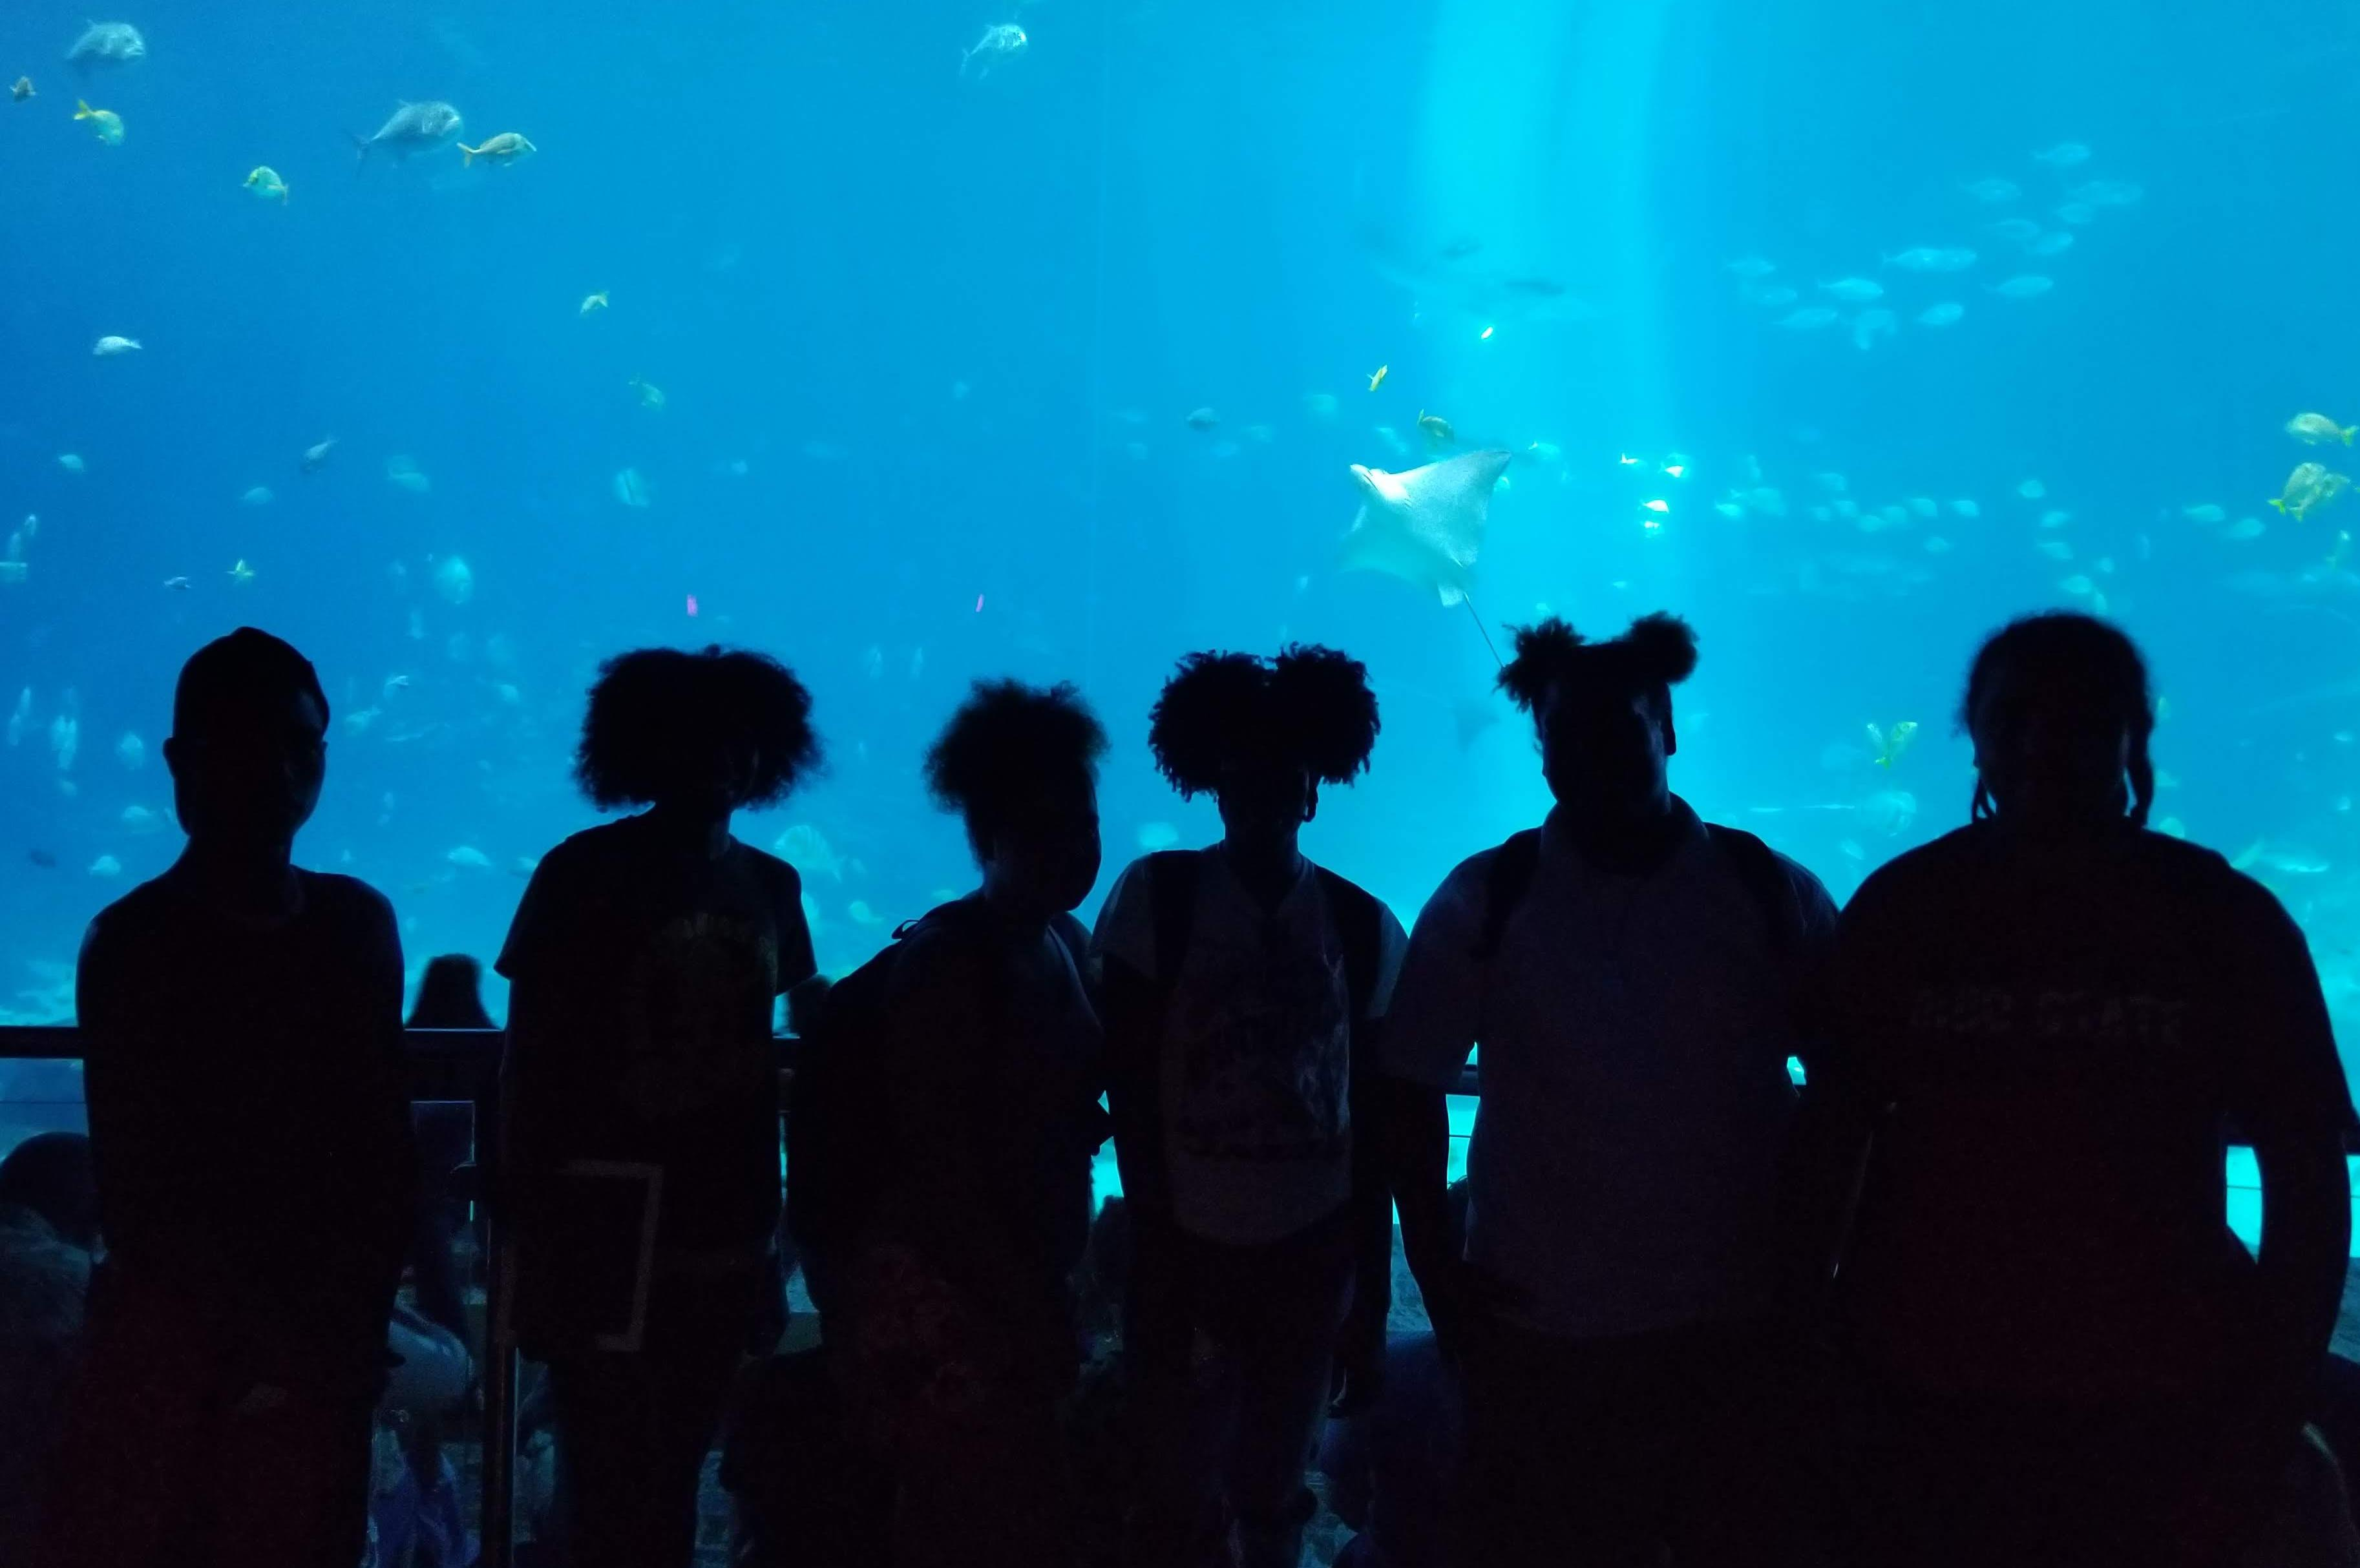 Upward Bound students standing in front of a large aquarium.